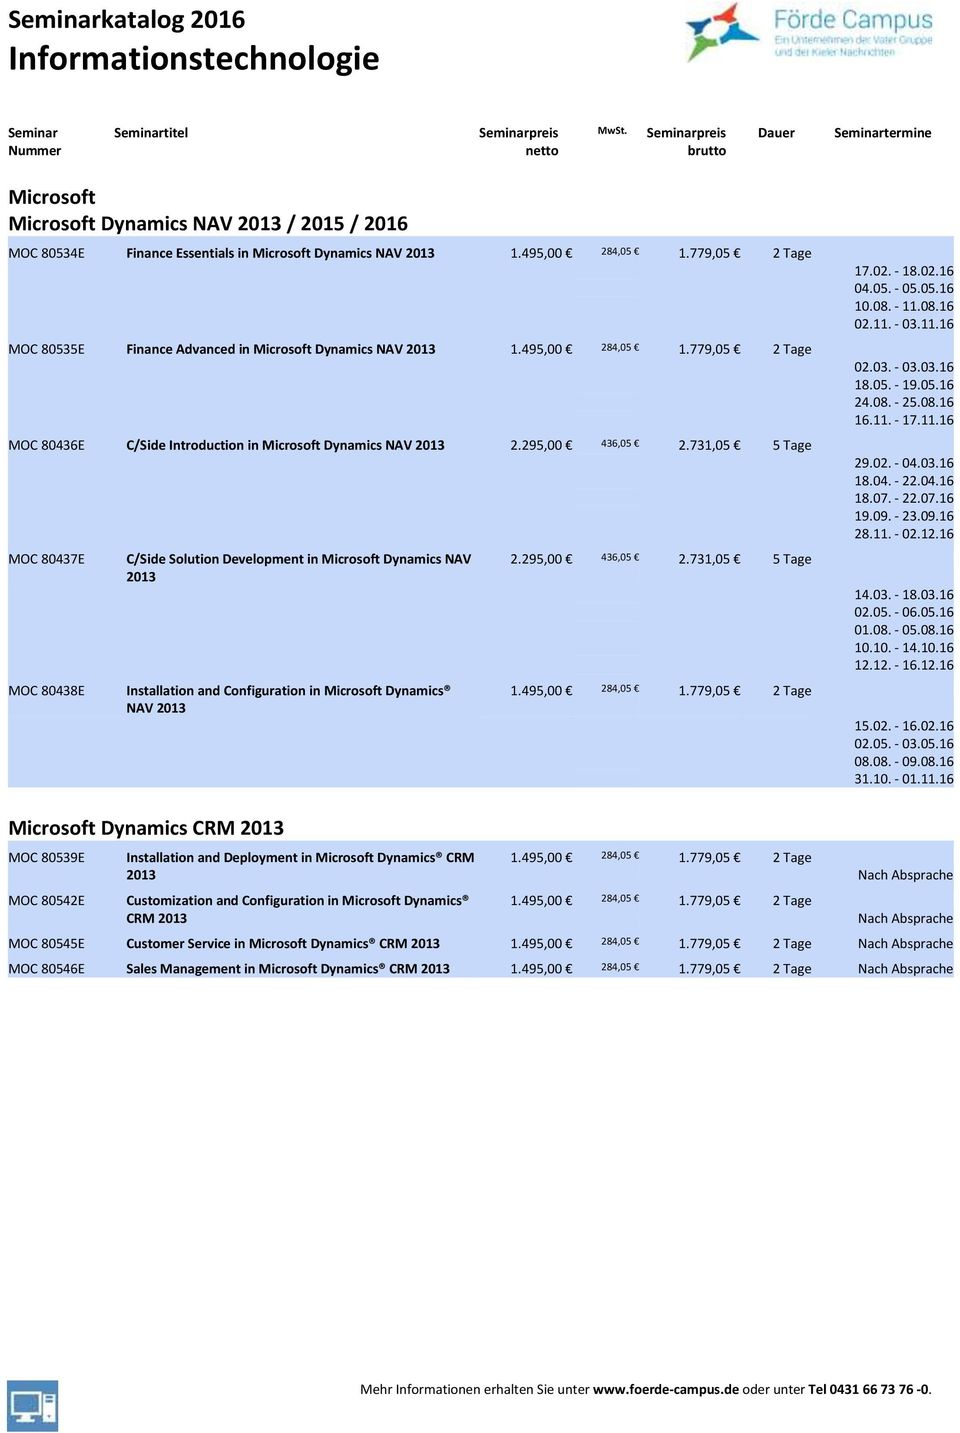 731,05 5 Tage MOC 80437E MOC 80438E C/Side Solution Development in Microsoft Dynamics NAV 2013 Installation and Configuration in Microsoft Dynamics NAV 2013 2.295,00 436,05 2.731,05 5 Tage 1.